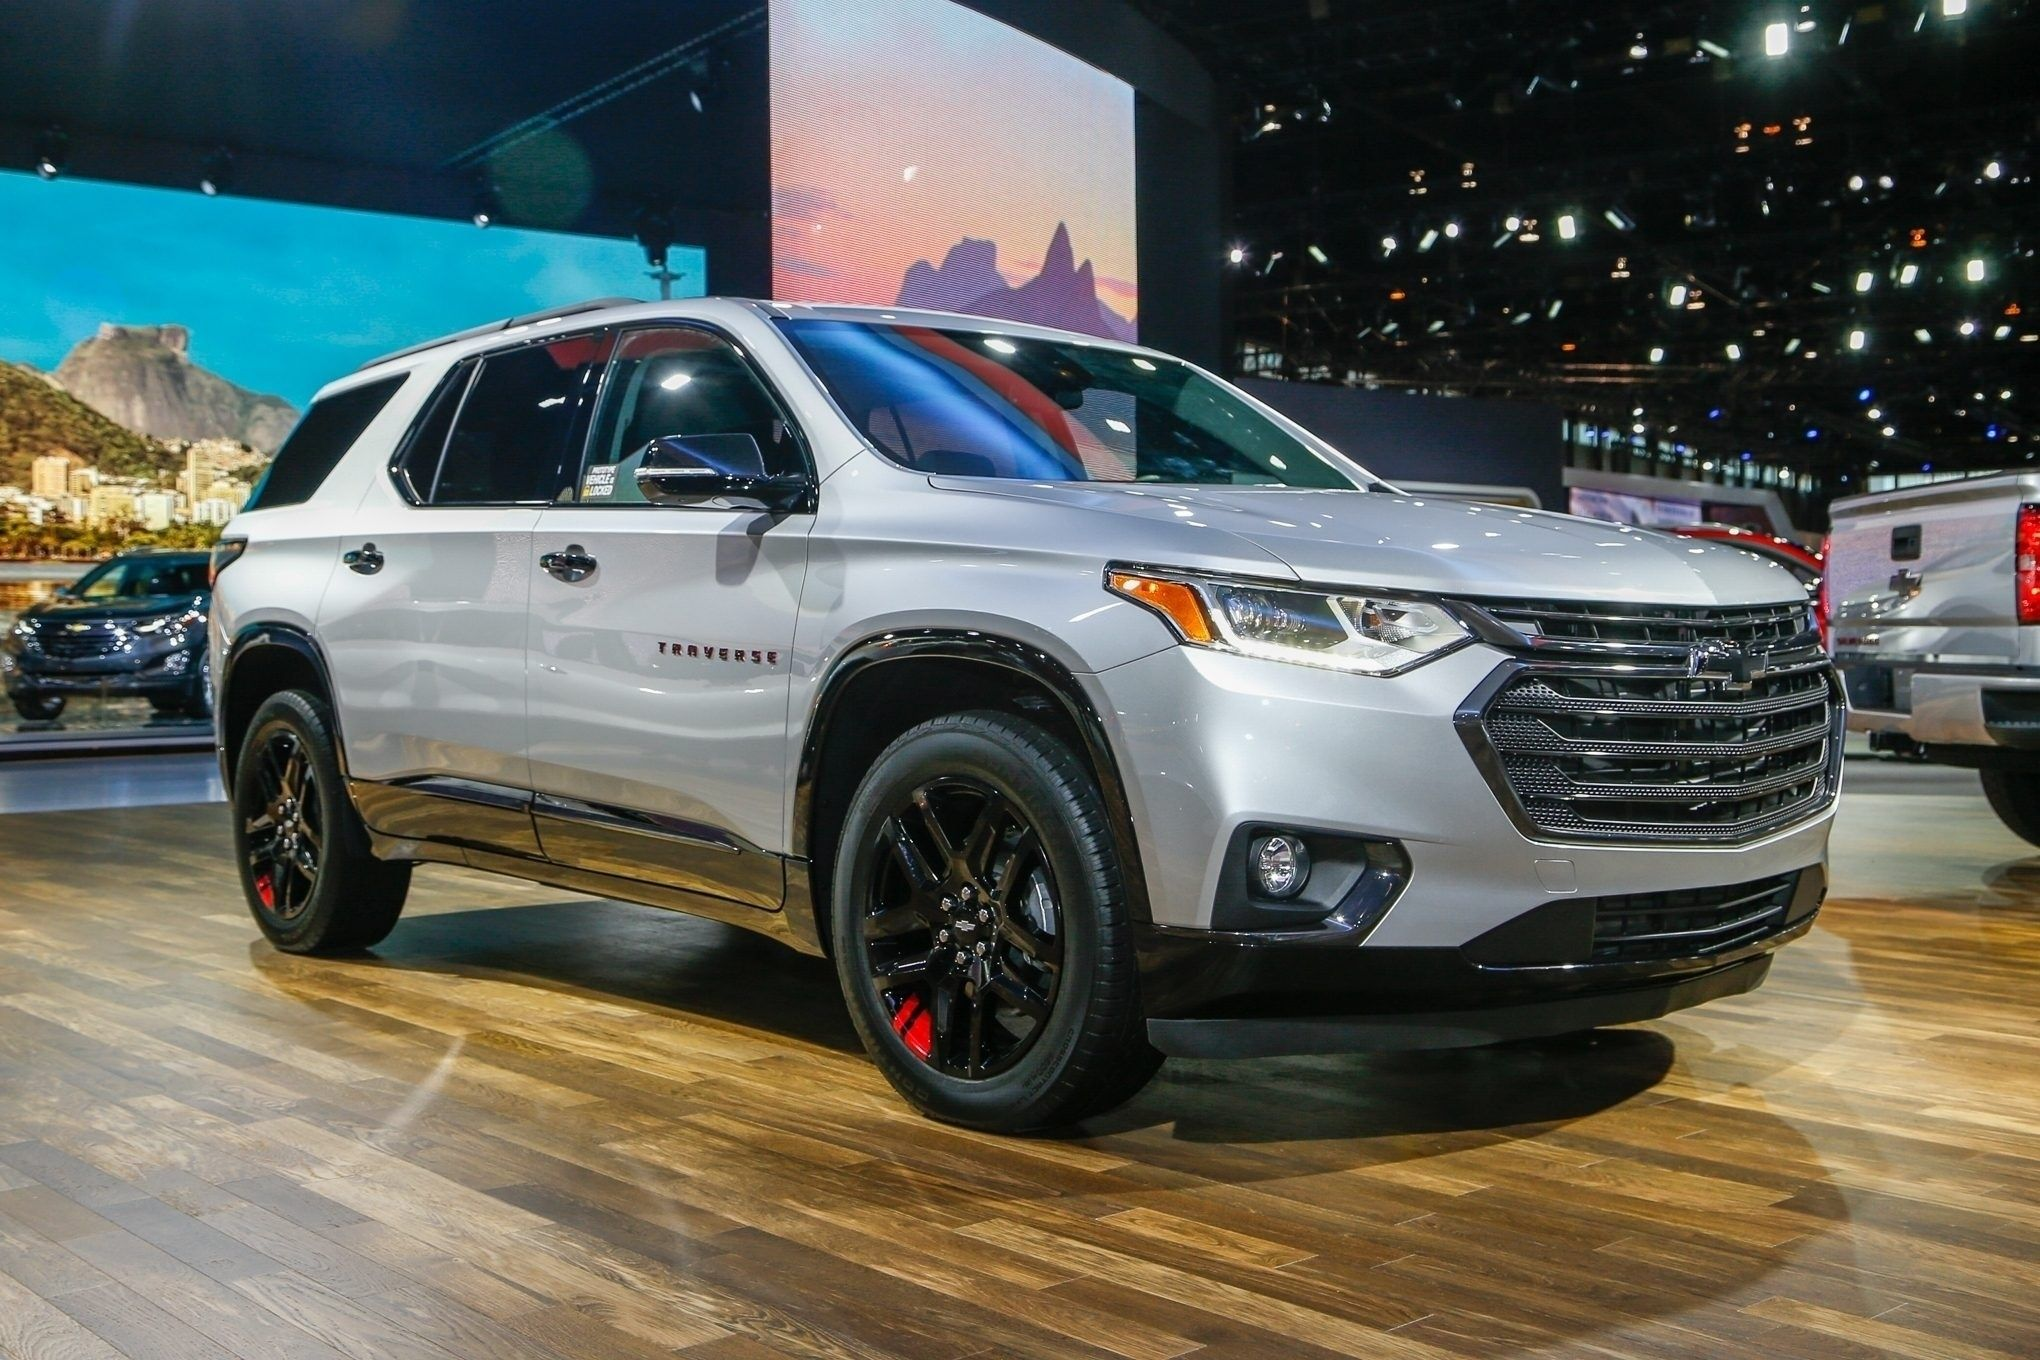 2019 Chevrolet Traverse Msrp Overview And Price Chevrolet